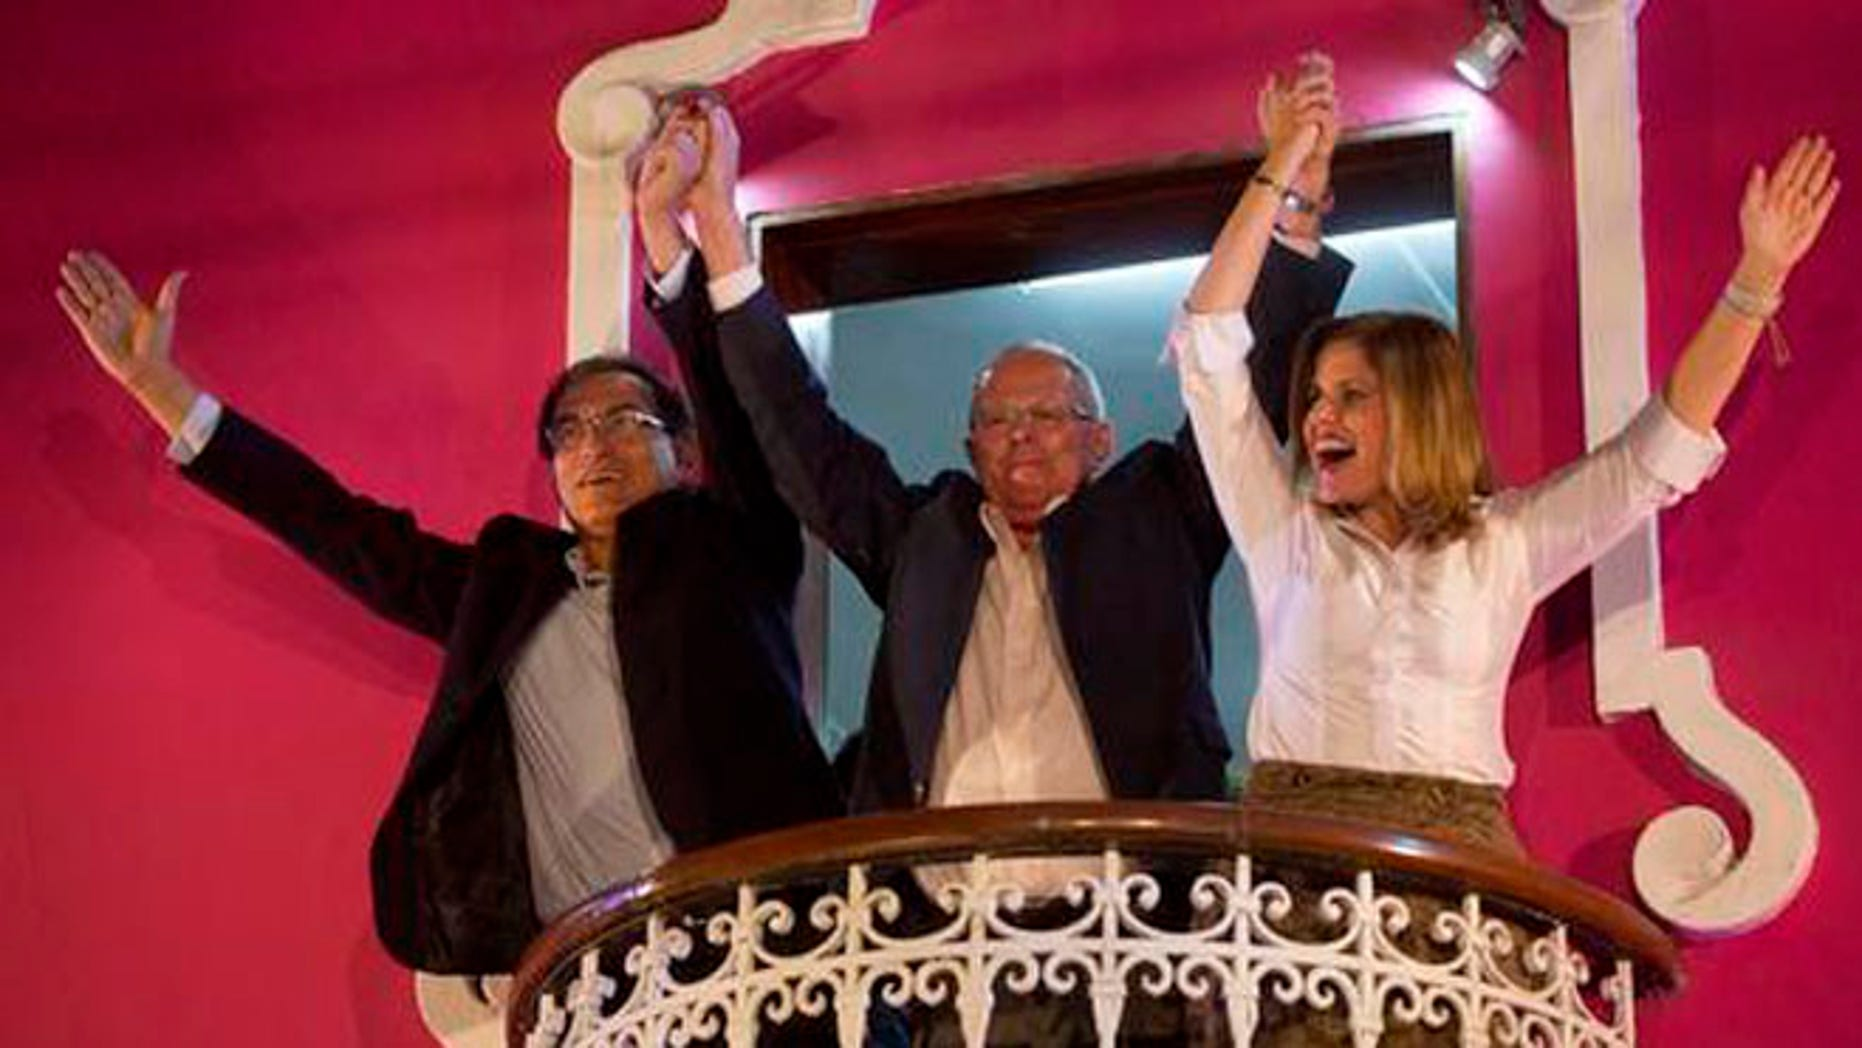 FILE - In this June 5, 2016 file photo, presidential candidate Pedro Pablo Kuczynski, center, celebrates with his running mates for first and second vice-presidents Martin Vizcarra, left, and Mercedes Araoz, right, from the balcony of their headquarters in Lima, Peru. Kuczynski began the task of forming a government Friday, June 10, 2016, after his rival Keiko Fujimori conceded defeat in Peru's closest presidential contest in five decades. His margin of victory was less than 43,000 votes, or 0.2 percentage points. (AP Photo/Rodrigo Abd, File)